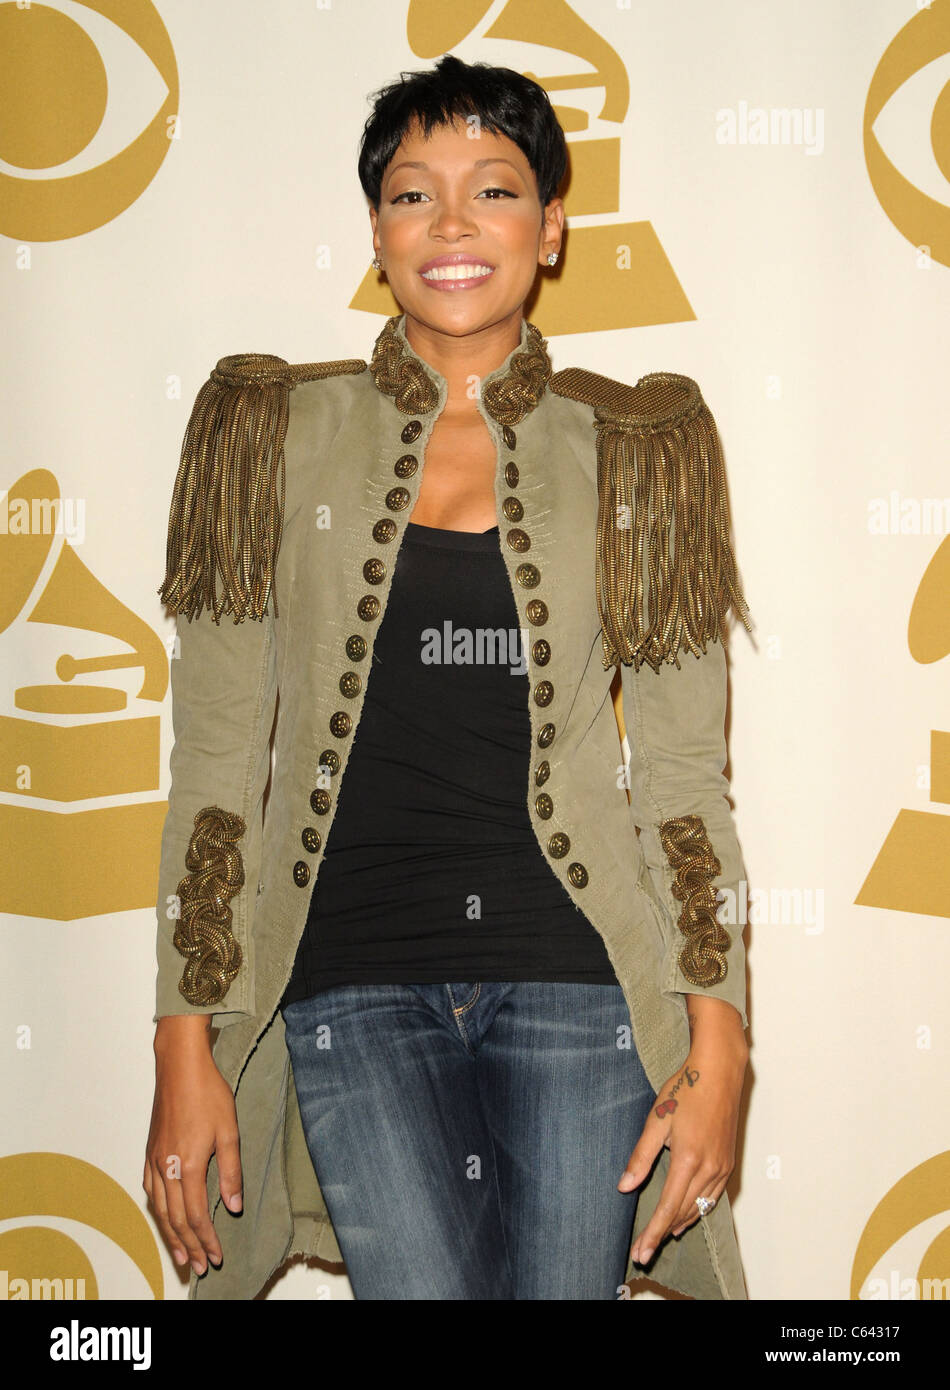 Monica in attendance for The GRAMMY Nominations Concert, Club Nokia, Los Angeles, CA December 1, 2010. Photo By: - Stock Image